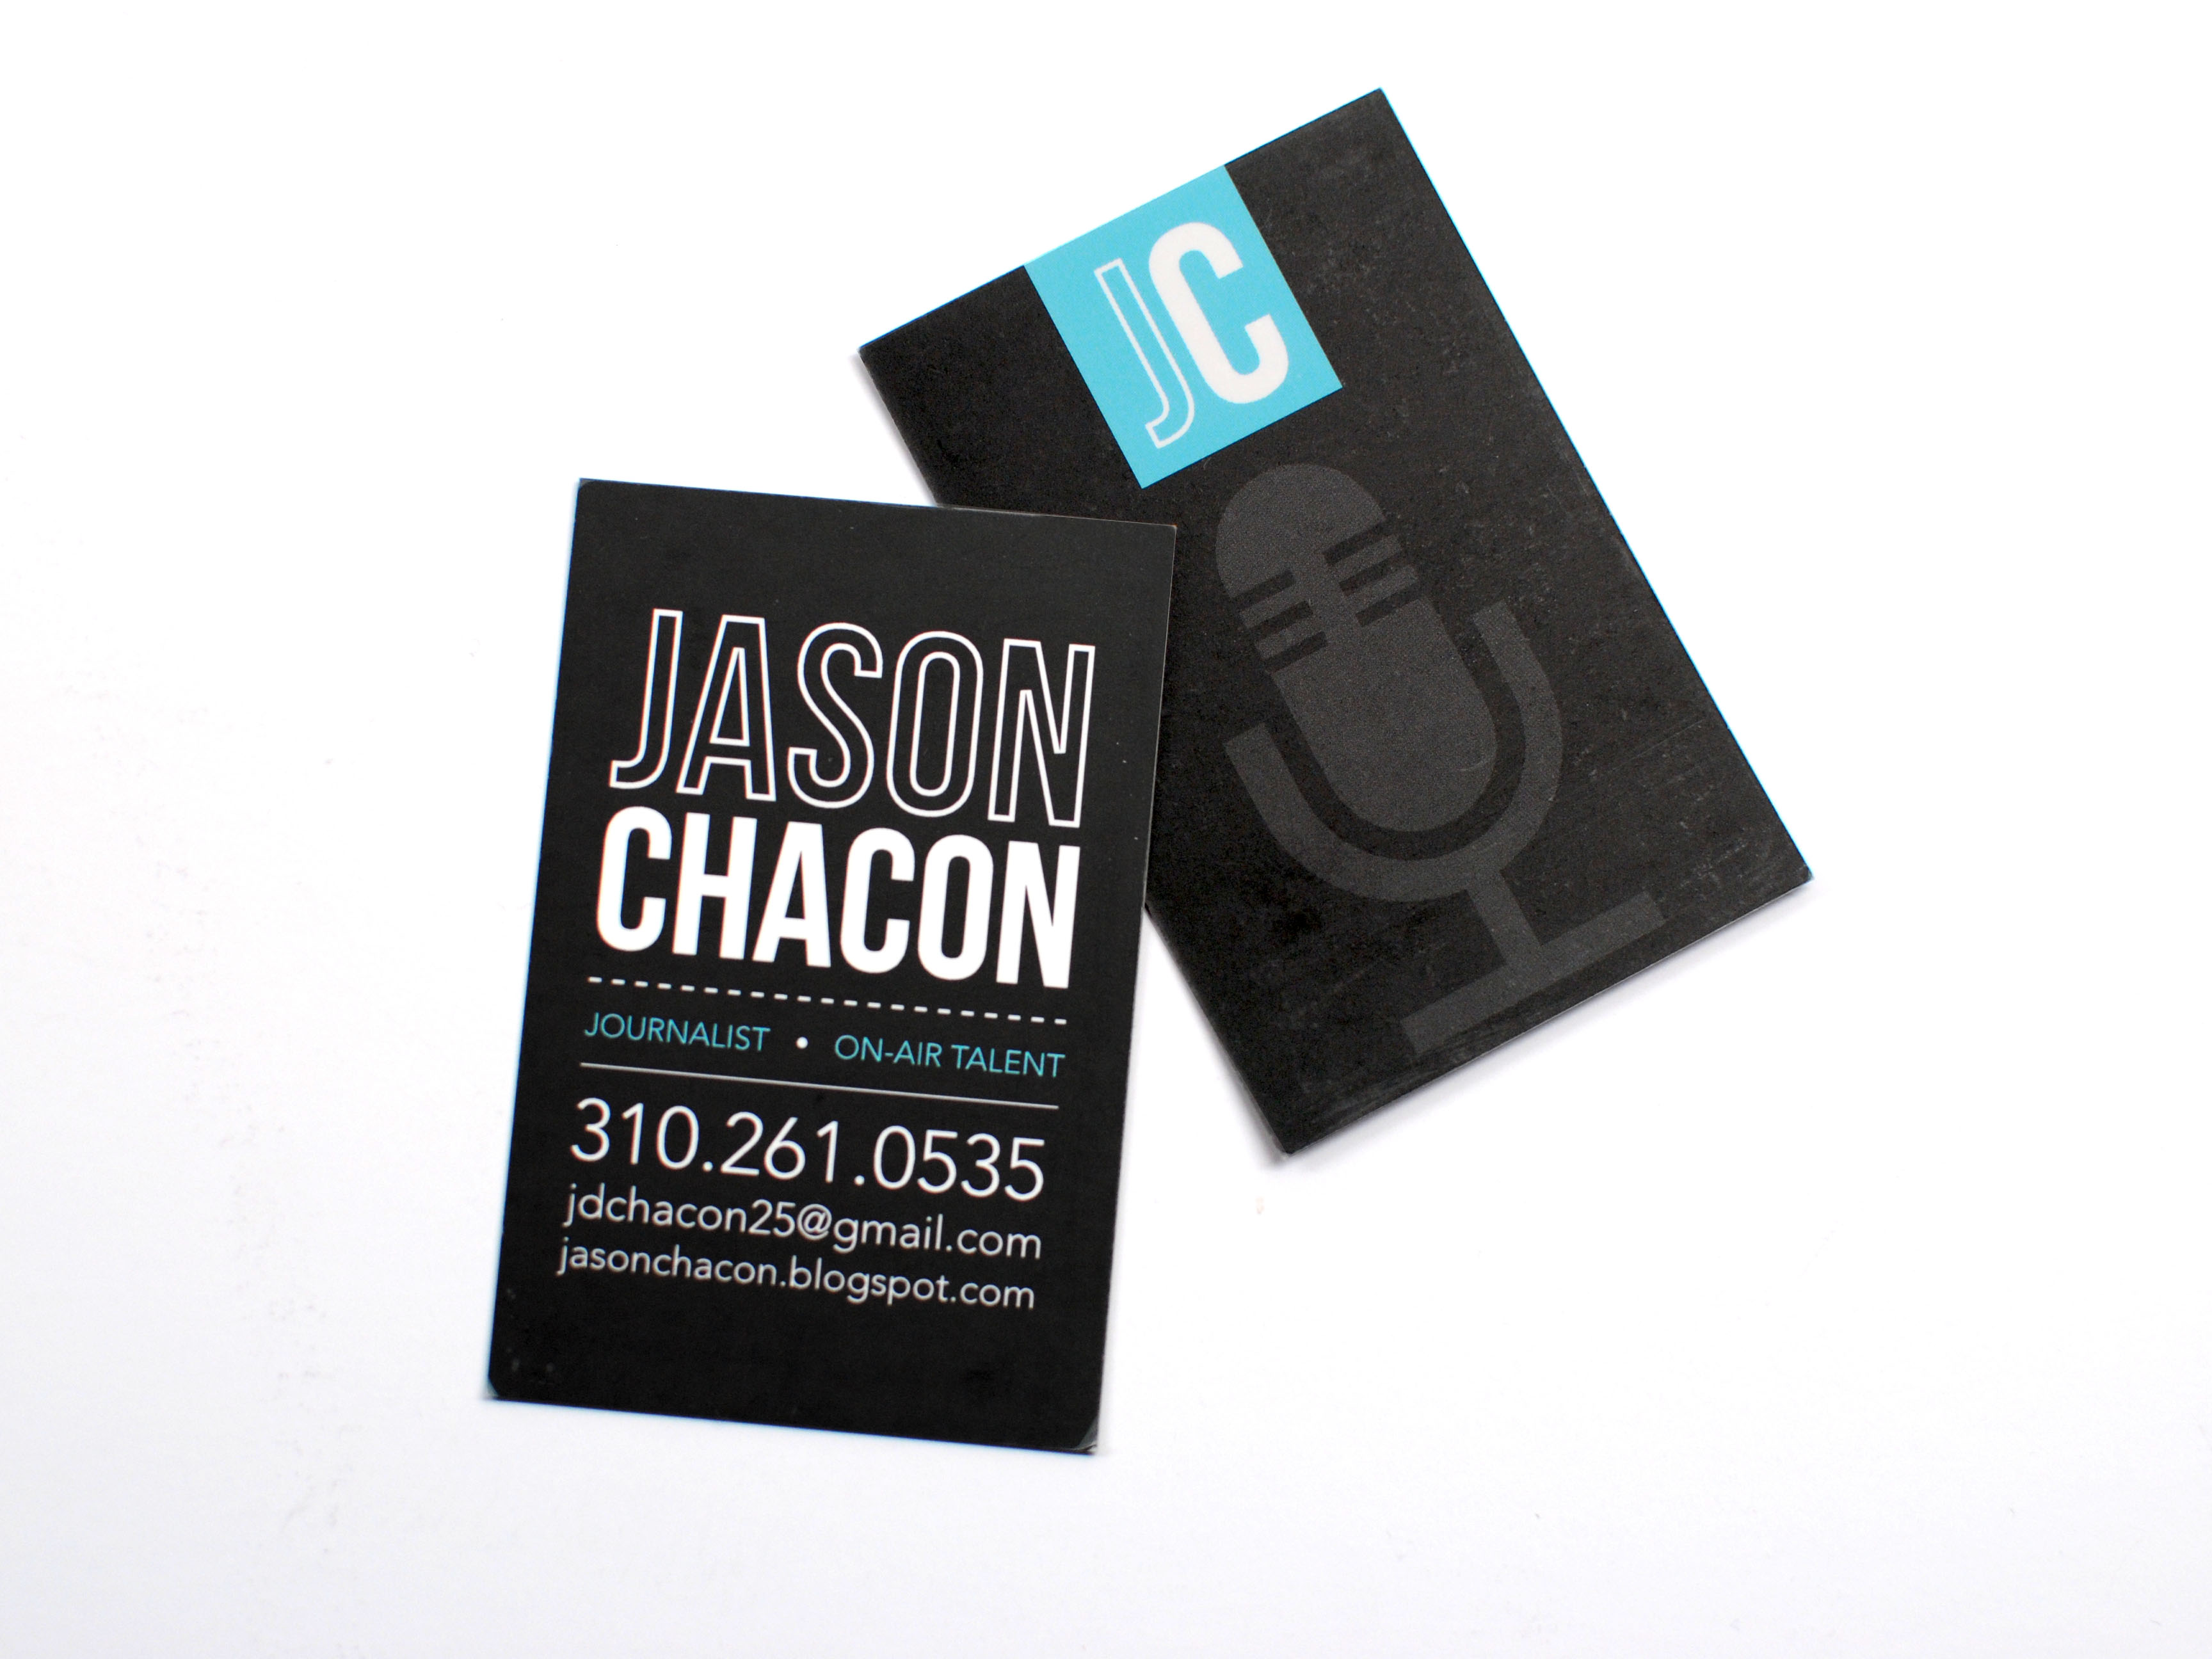 Business Card – Jason Chacon – The portfolio of Becca Mendez